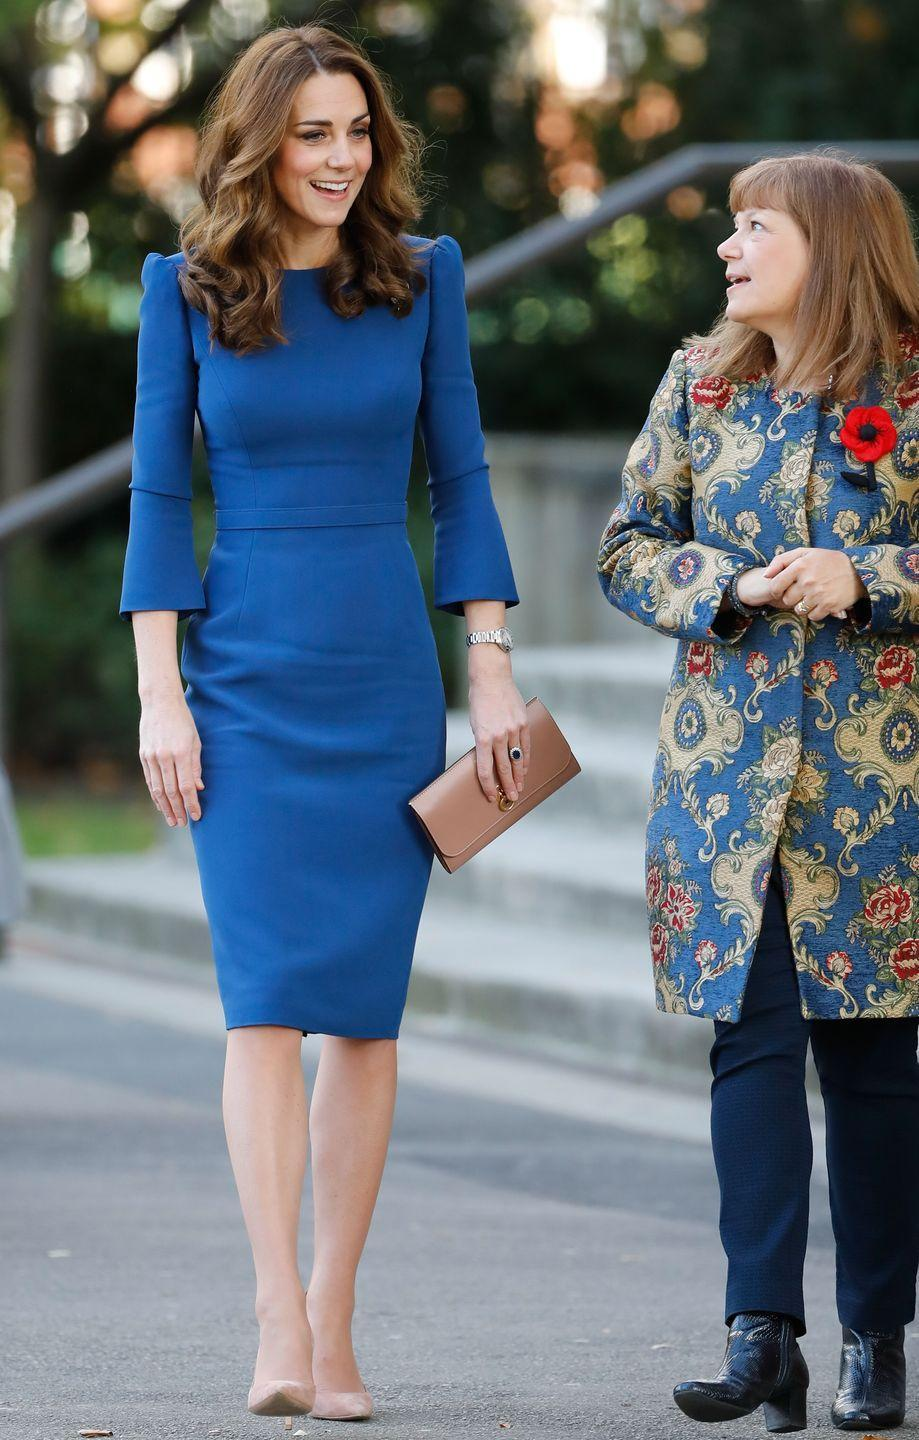 """<p>The Duchess stepped out <a href=""""https://www.townandcountrymag.com/society/tradition/a24477283/kate-middleton-blue-jenny-packham-dress-imperial-war-museum-photo/"""" rel=""""nofollow noopener"""" target=""""_blank"""" data-ylk=""""slk:for a visit to the Imperial War Museum"""" class=""""link rapid-noclick-resp"""">for a visit to the Imperial War Museum</a> in London. Kate wore a rich blue dress by Jenny Packham with a clutch and nude heels. </p>"""